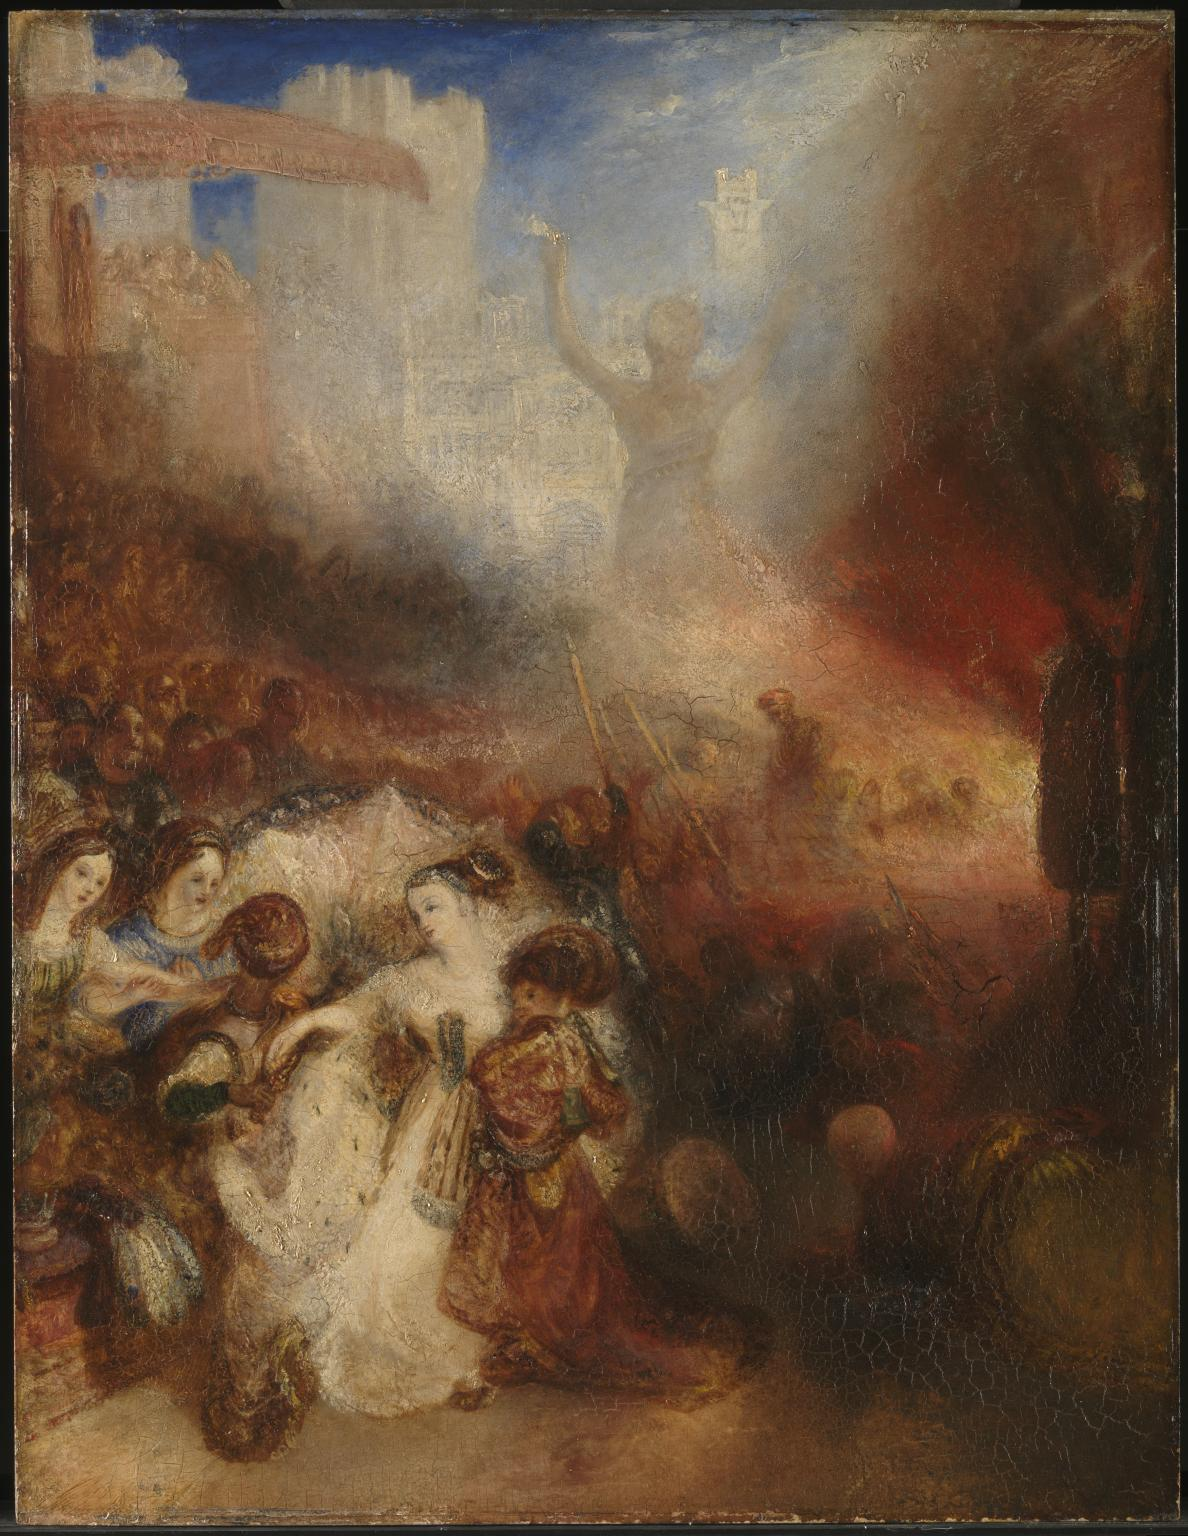 Shadrach, Meshach and Abednego in the Burning Fiery Furnace 1832